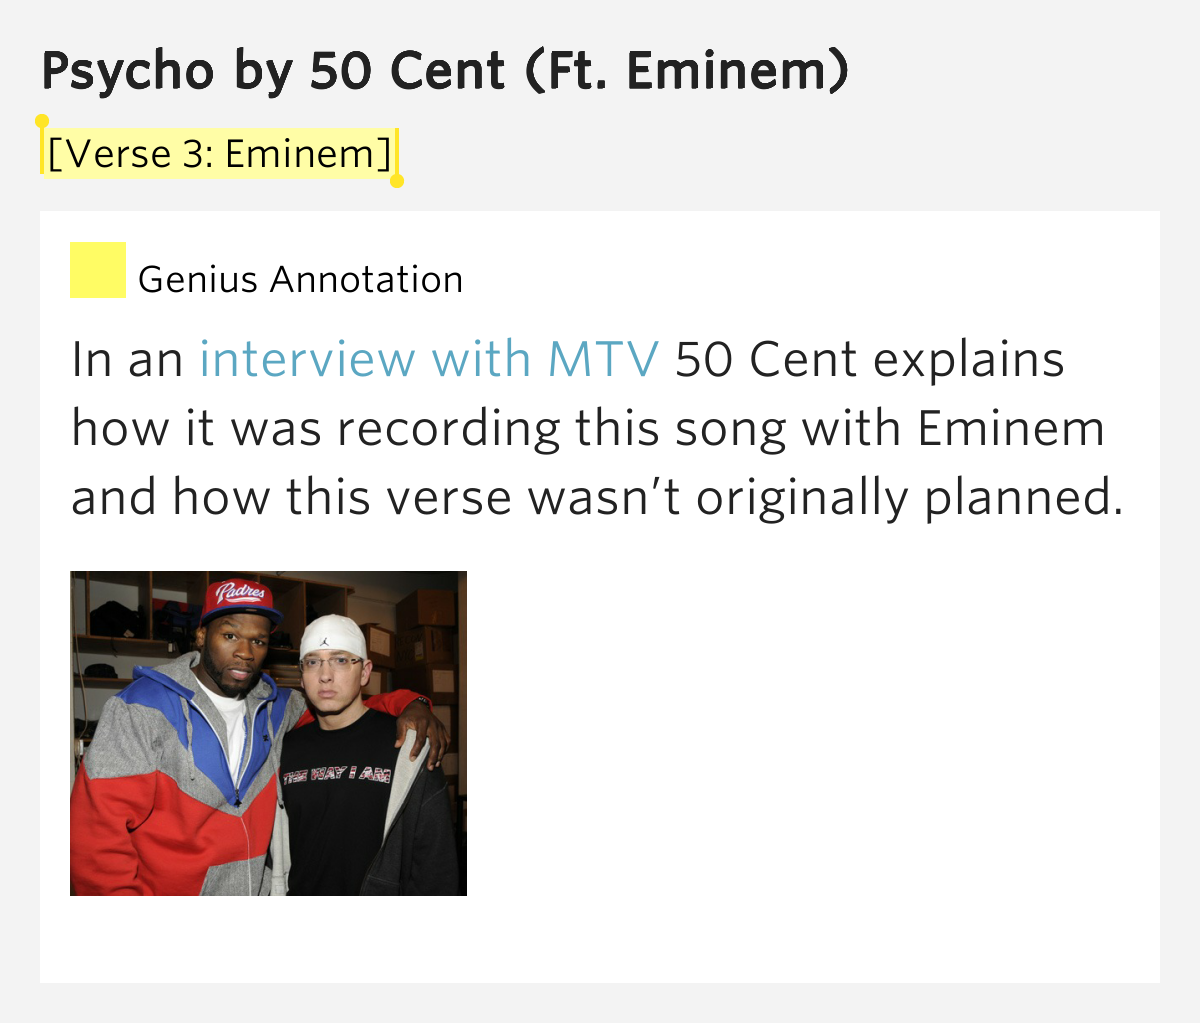 Eminem & 50 Cent - Psycho Lyrics - YouTube